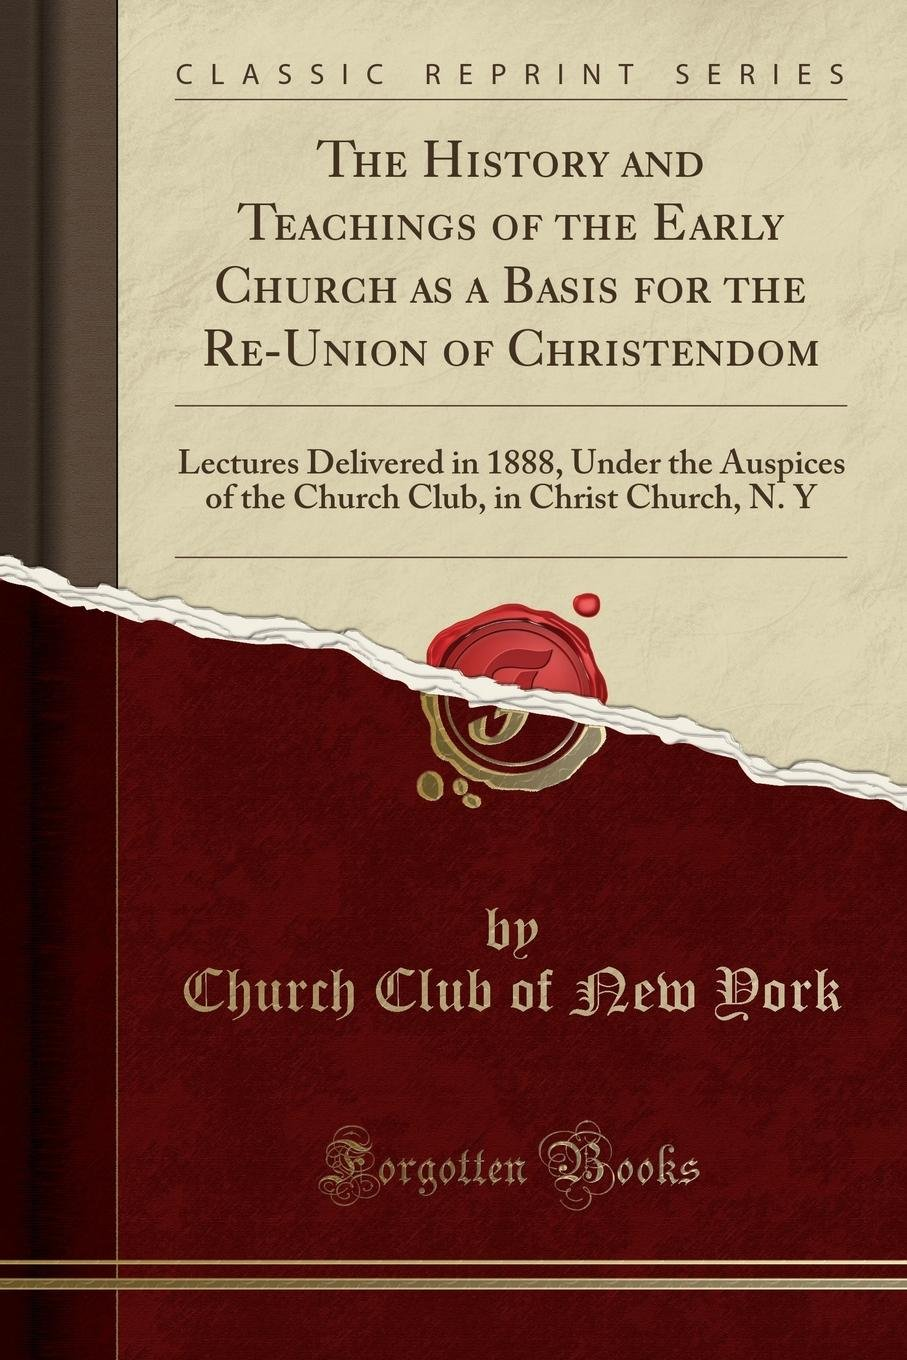 Download The History and Teachings of the Early Church as a Basis for the Re-Union of Christendom: Lectures Delivered in 1888, Under the Auspices of the Church Club, in Christ Church, N. Y (Classic Reprint) pdf